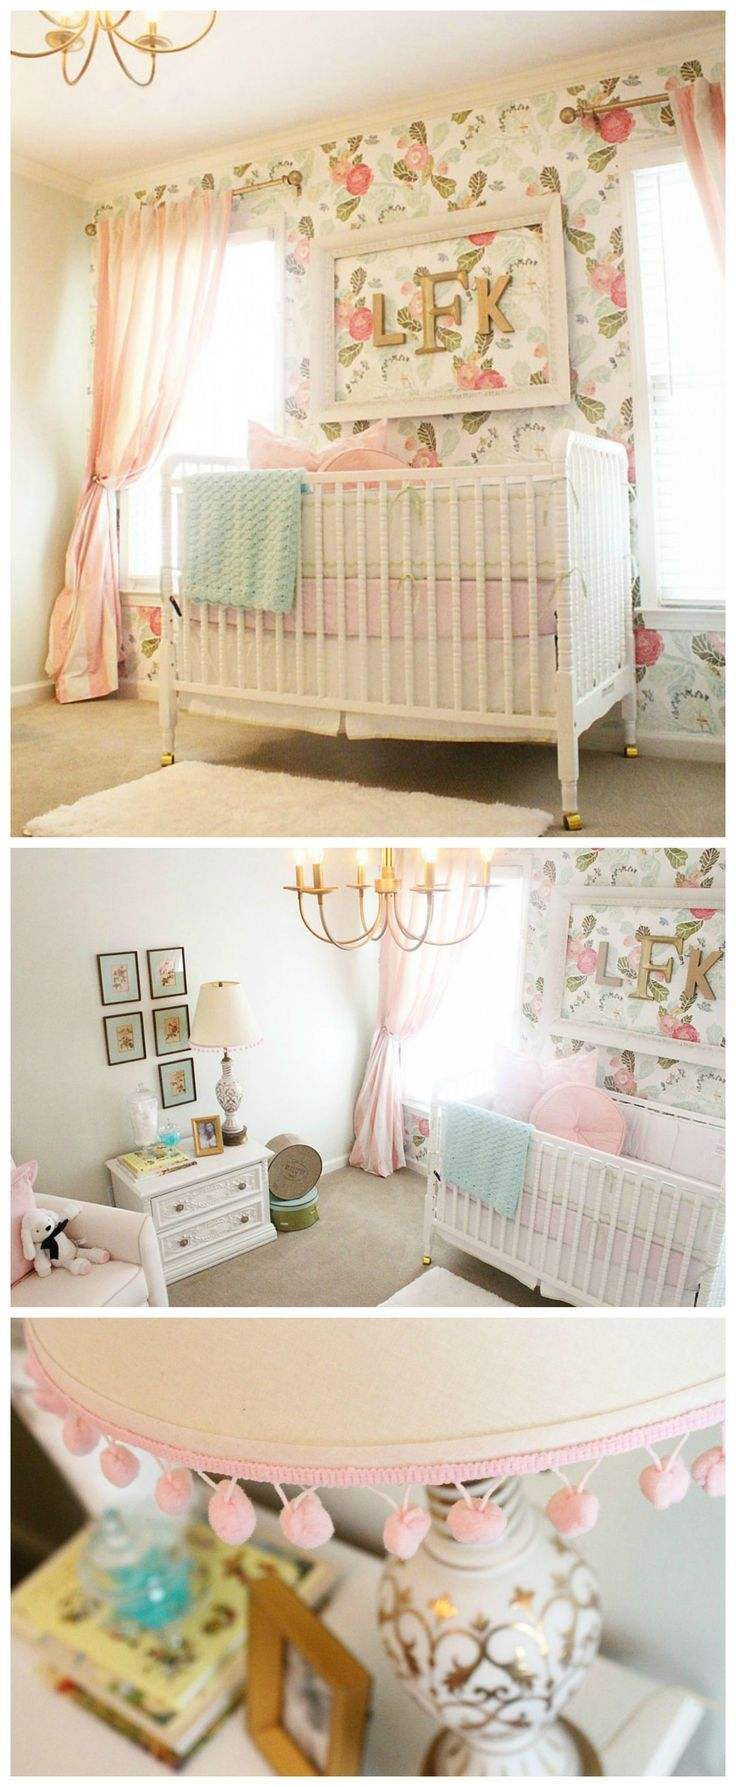 Nurseries in salt lake city - 17 Best Ideas About Vintage Baby Nurseries On Pinterest Vintage Baby Rooms Vintage Baby Girls And Nursery Storage